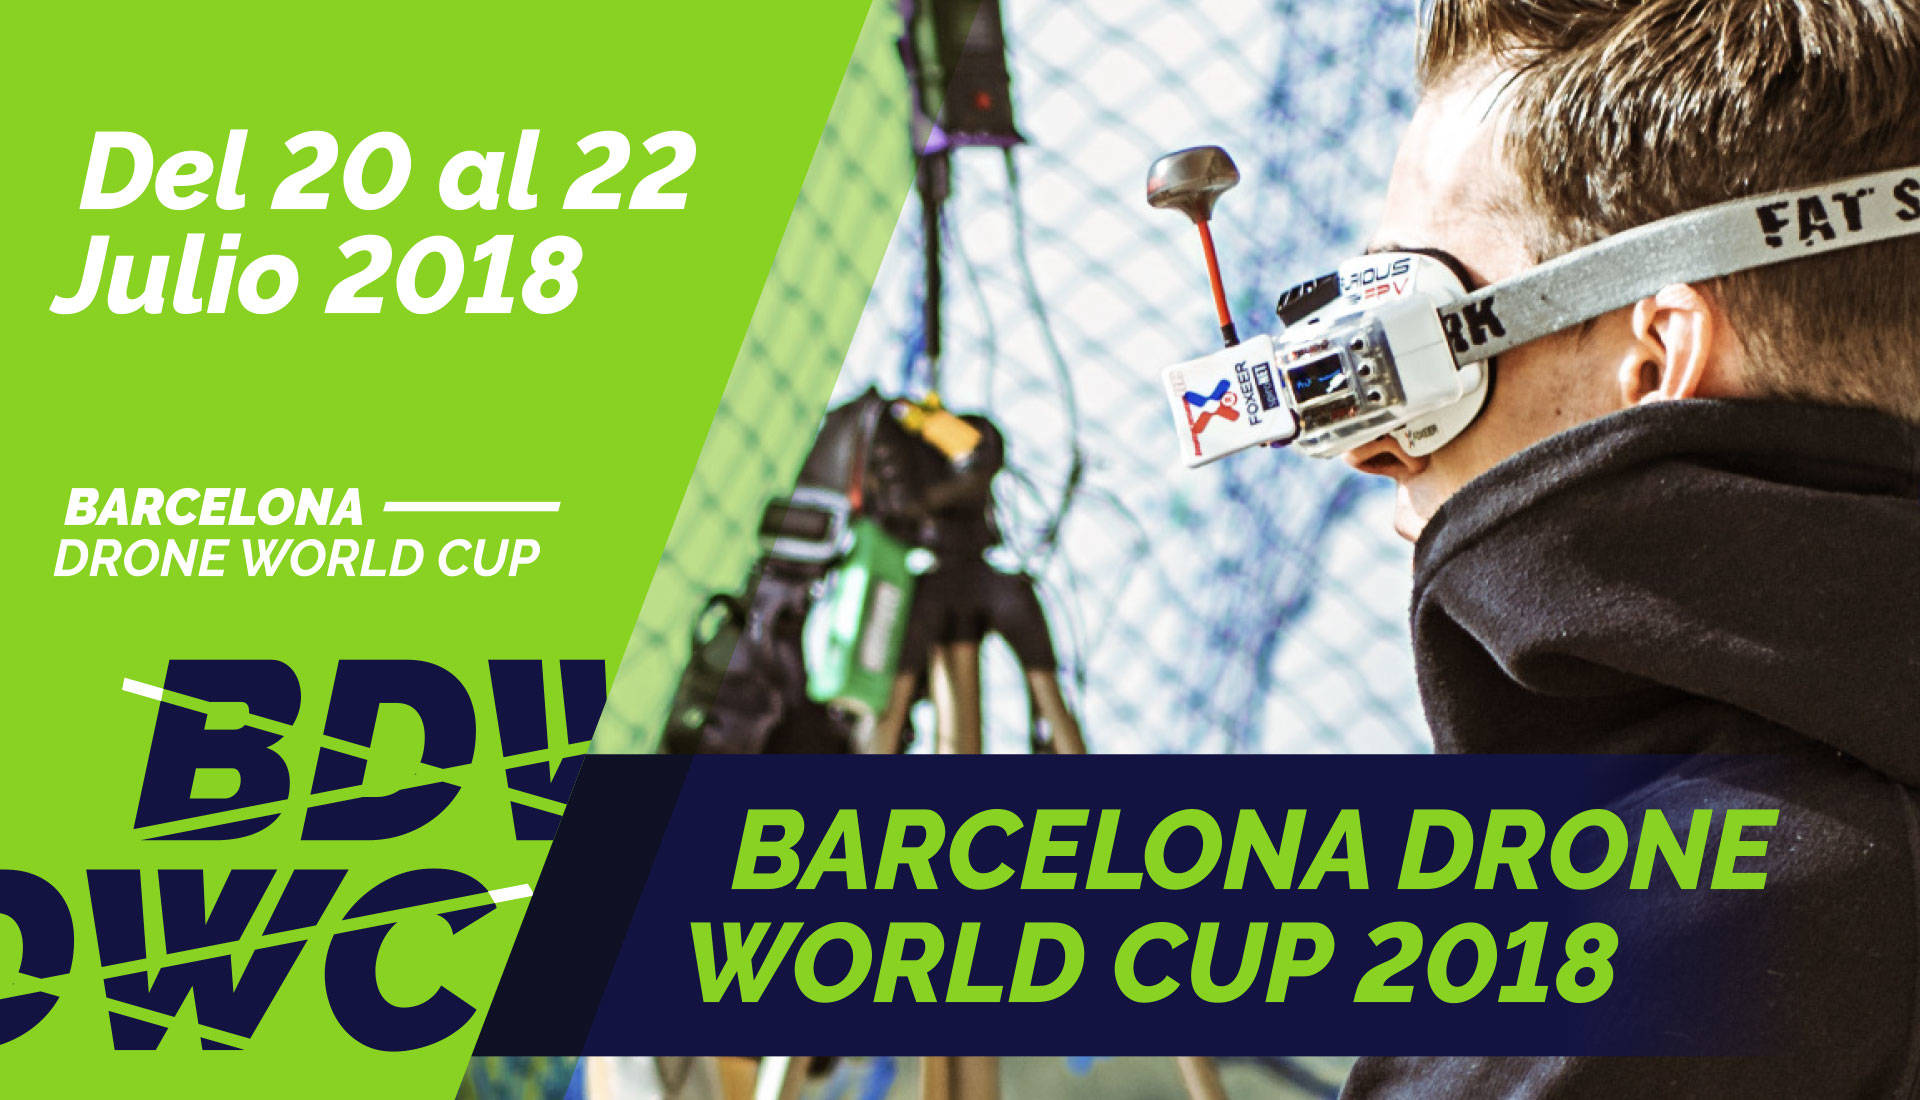 Barcelona Drone World Cup 2018